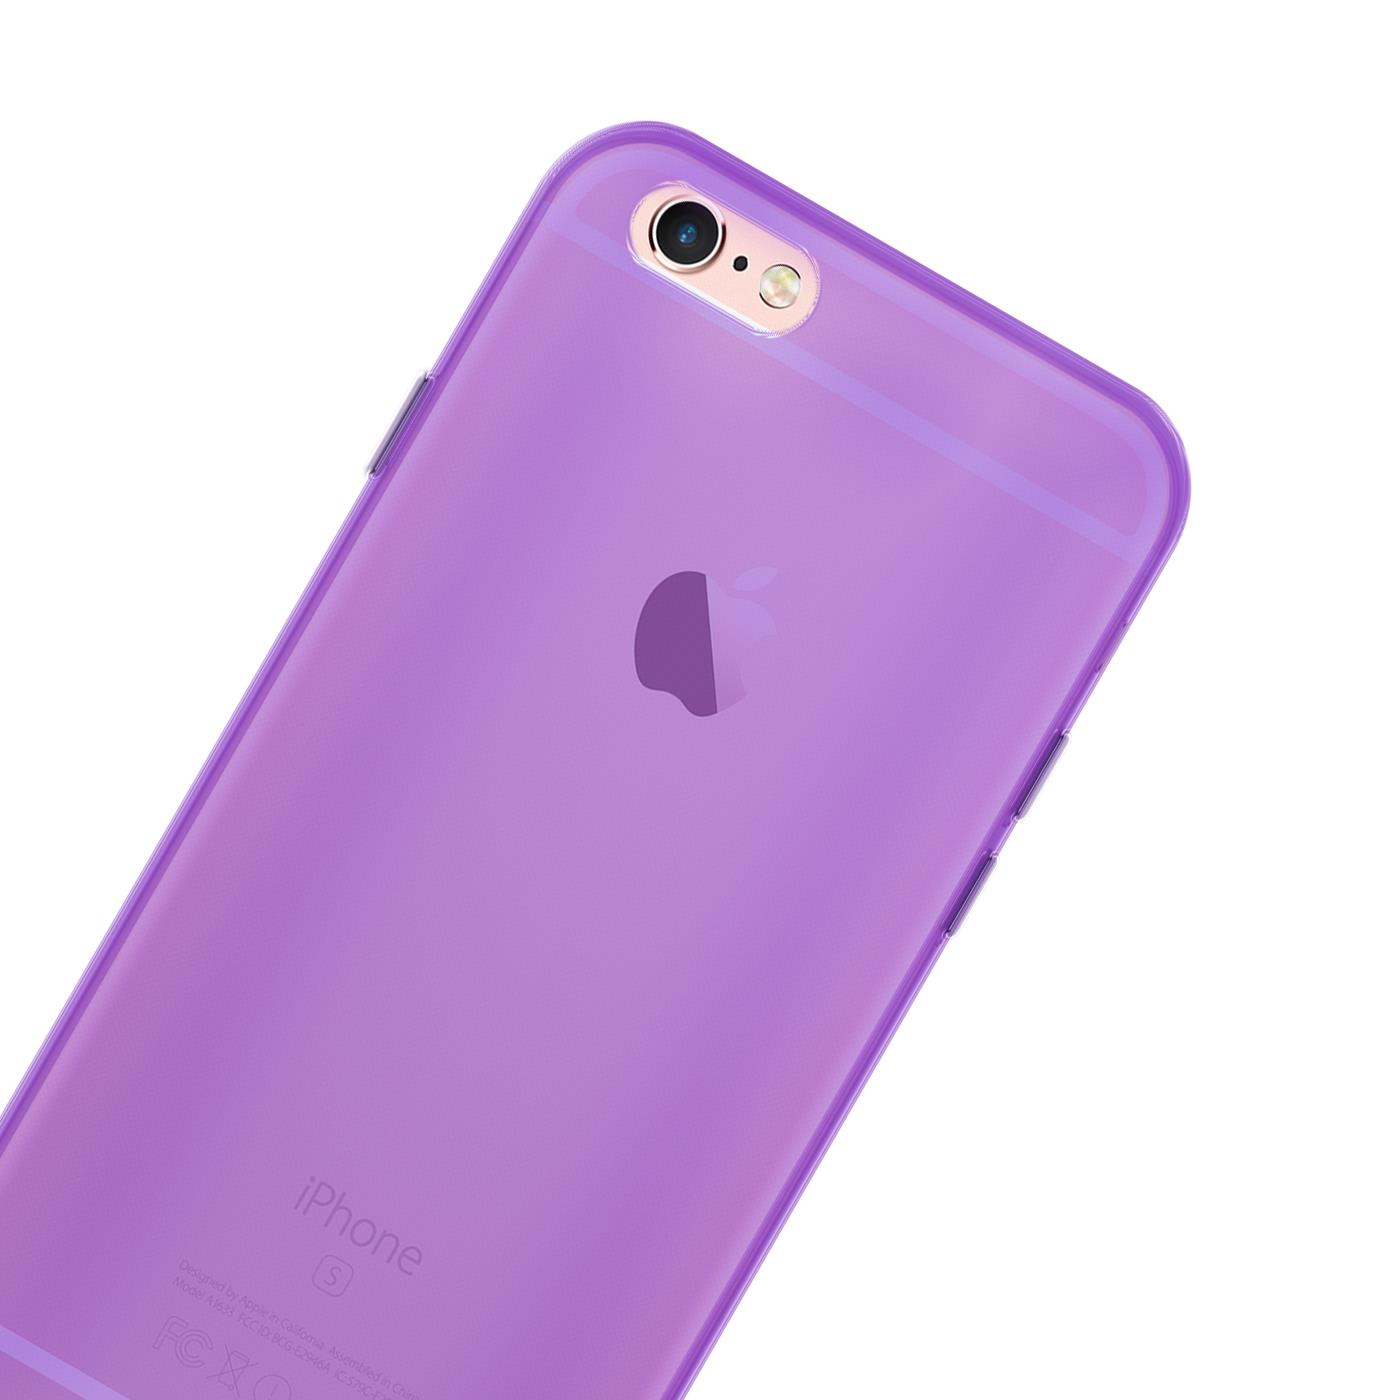 Handy-Huelle-Silikon-Case-Schutz-Tasche-Duenn-Slim-Cover-fuer-Apple-iPhone-Modelle Indexbild 26